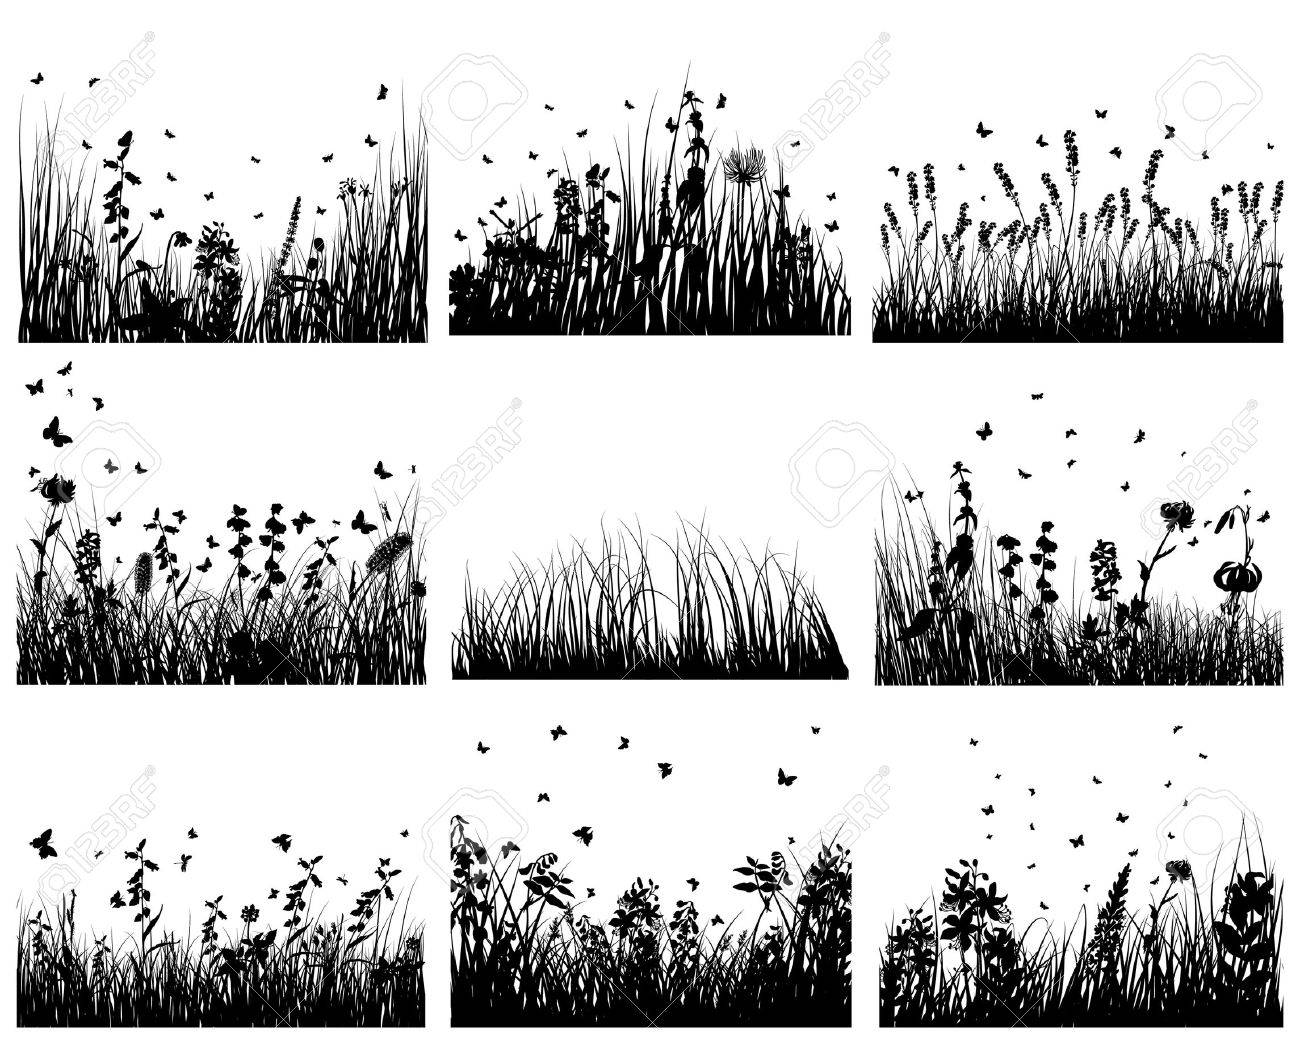 Vector grass silhouettes backgrounds set. All objects are separated. Stock Vector - 6509420